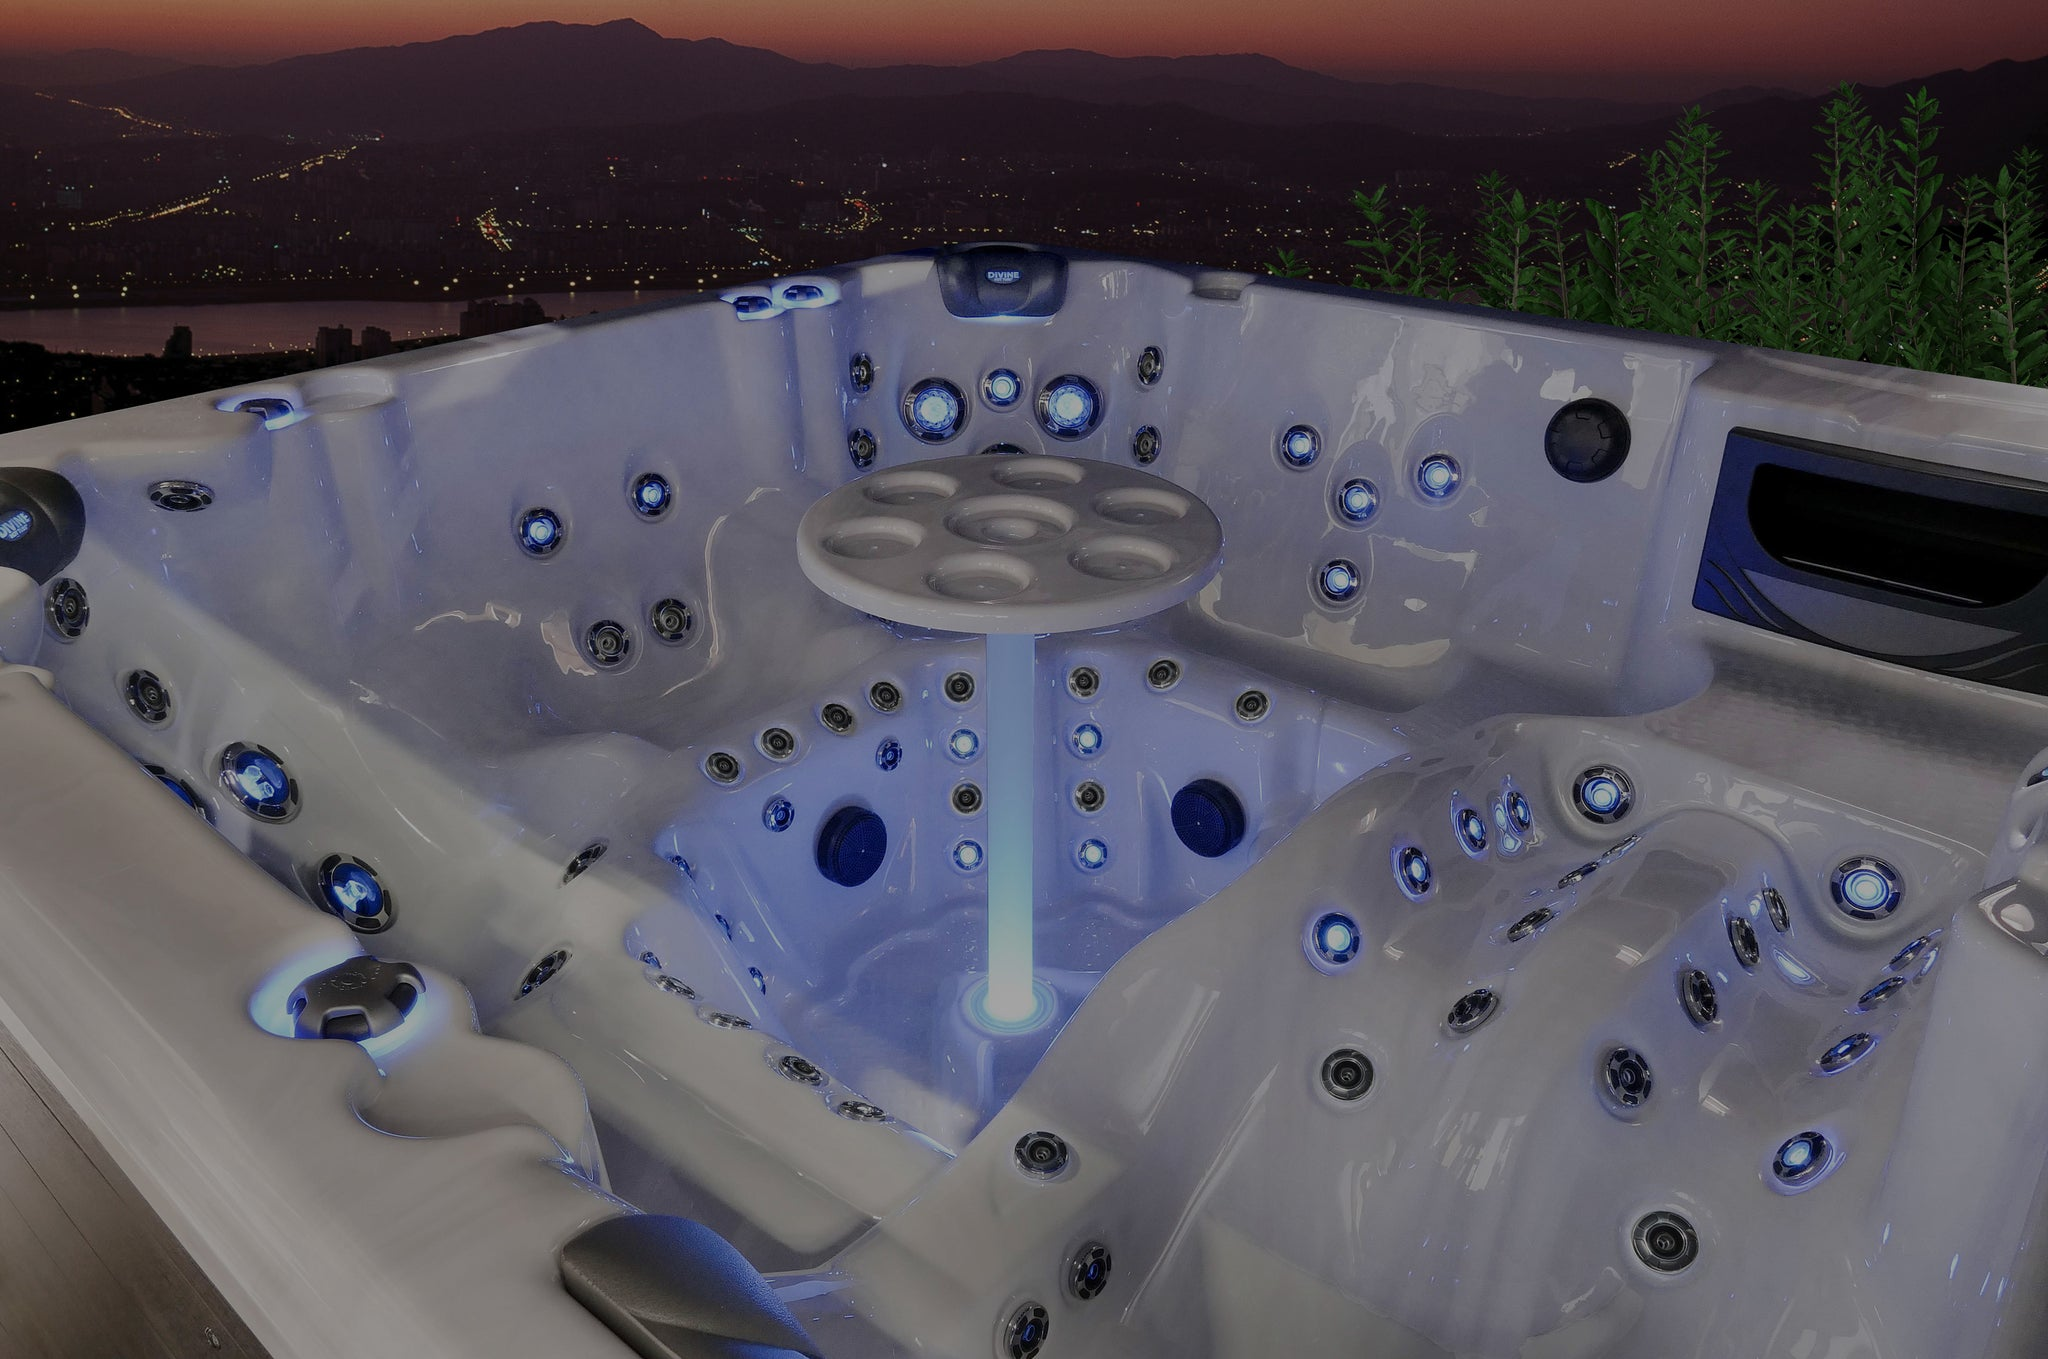 Divine Hot Tubs. Buy Online - Get Curbside Delivery FREE!!